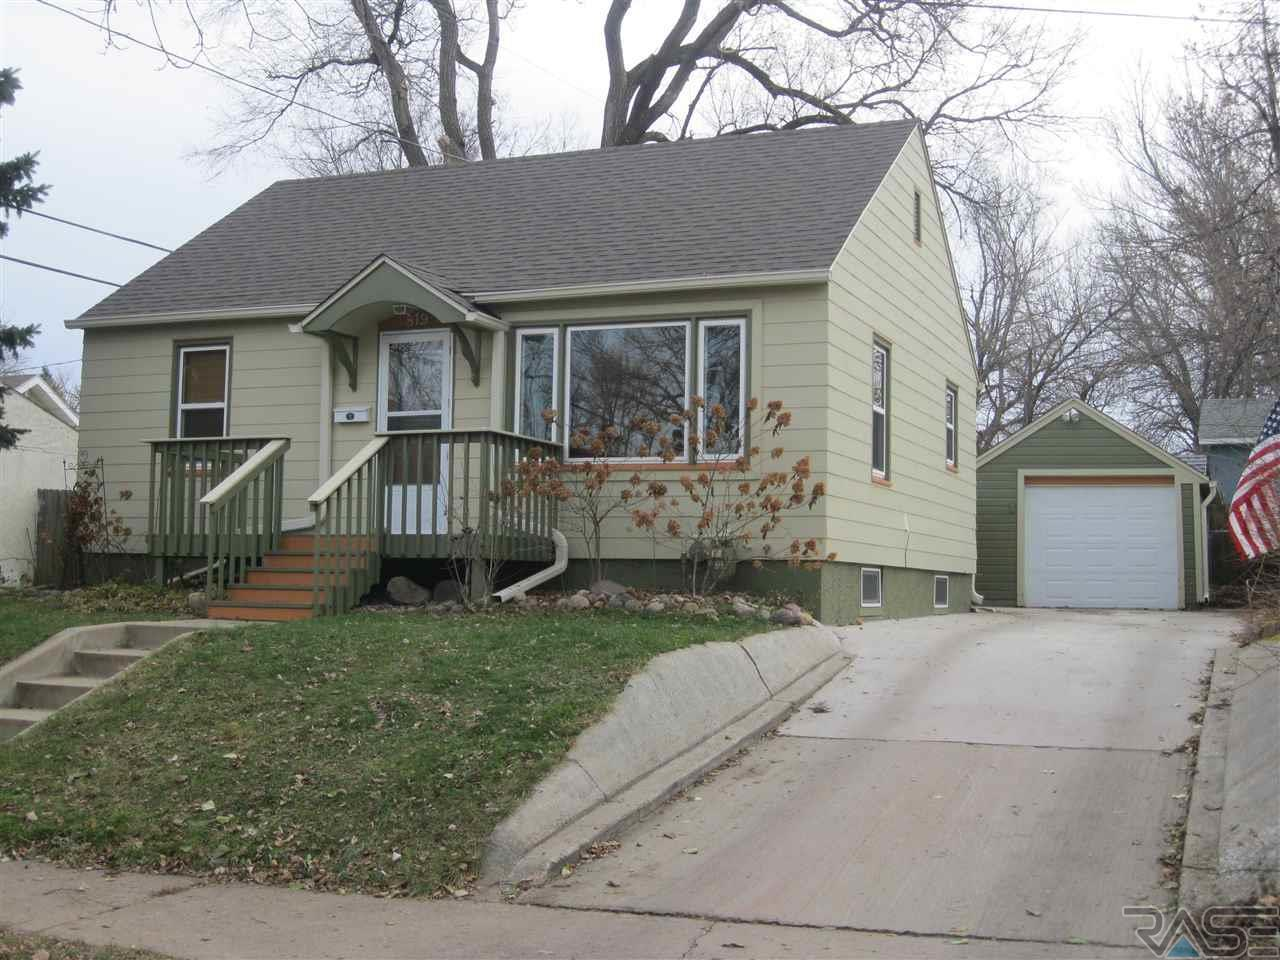 819 W 3rd St. Sioux Falls, SD SOLD by EXIT Realty Sioux Empire